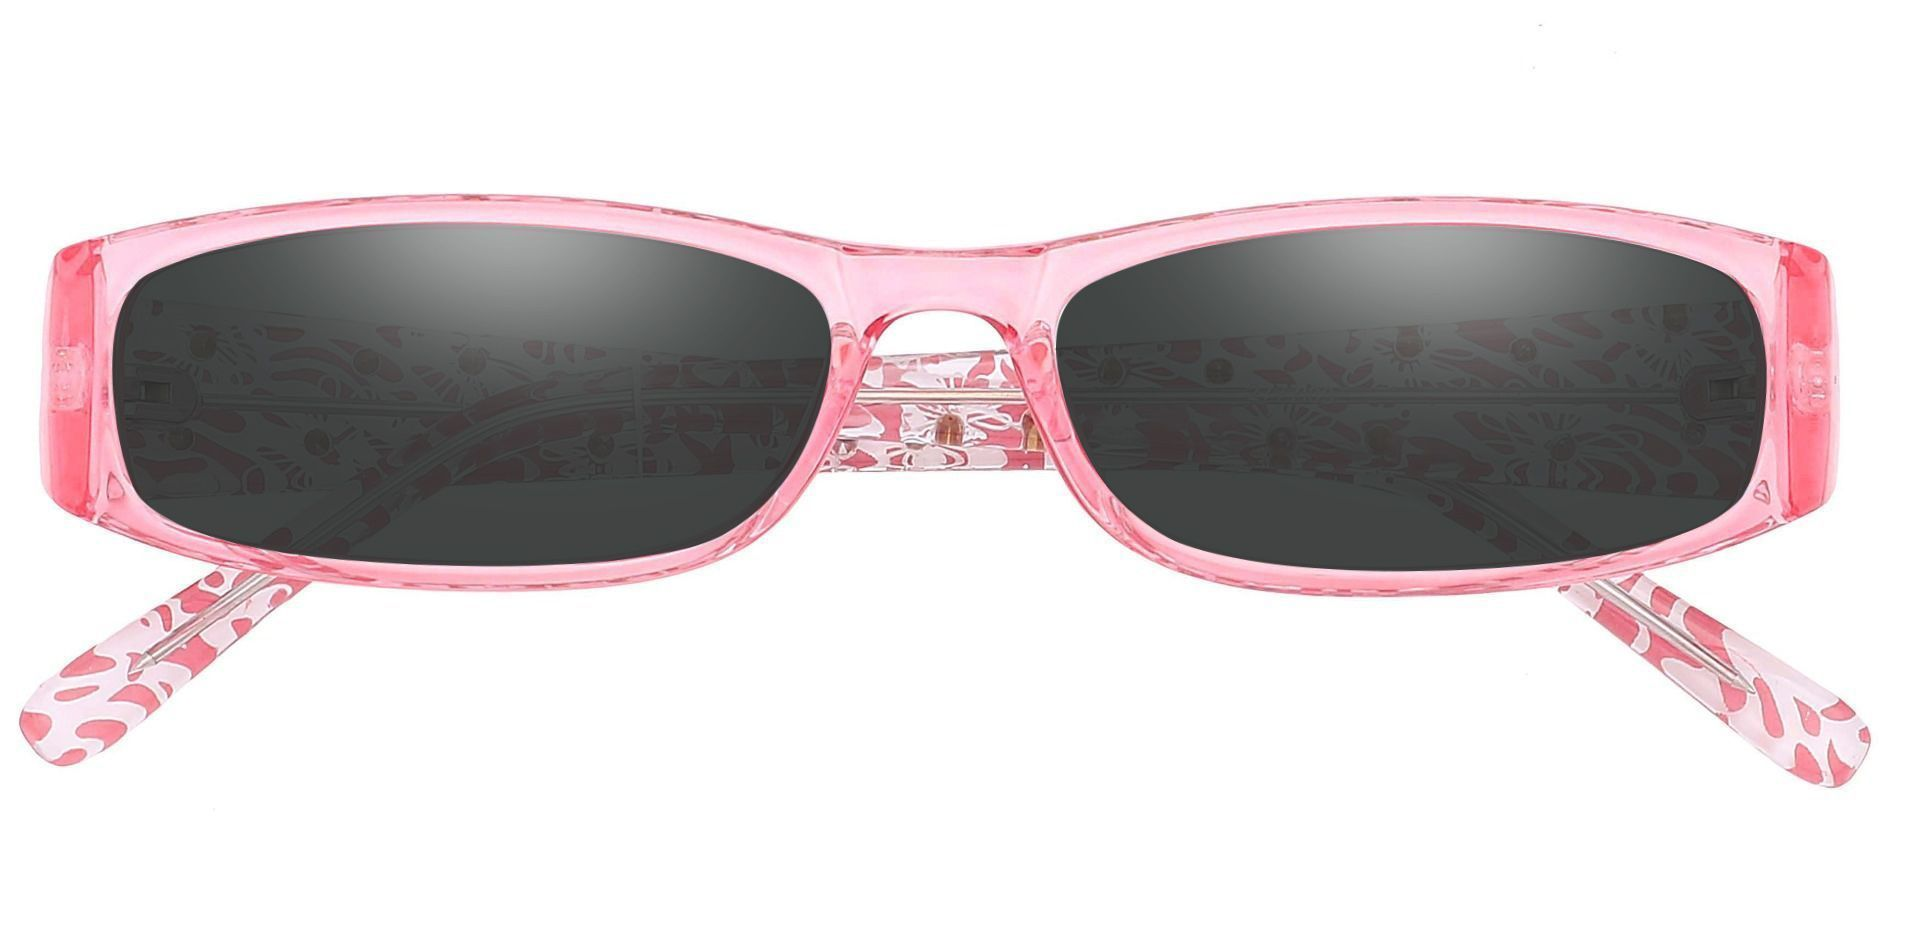 Camille Rectangle Single Vision Sunglasses -  Pink Frame With Gray Lenses